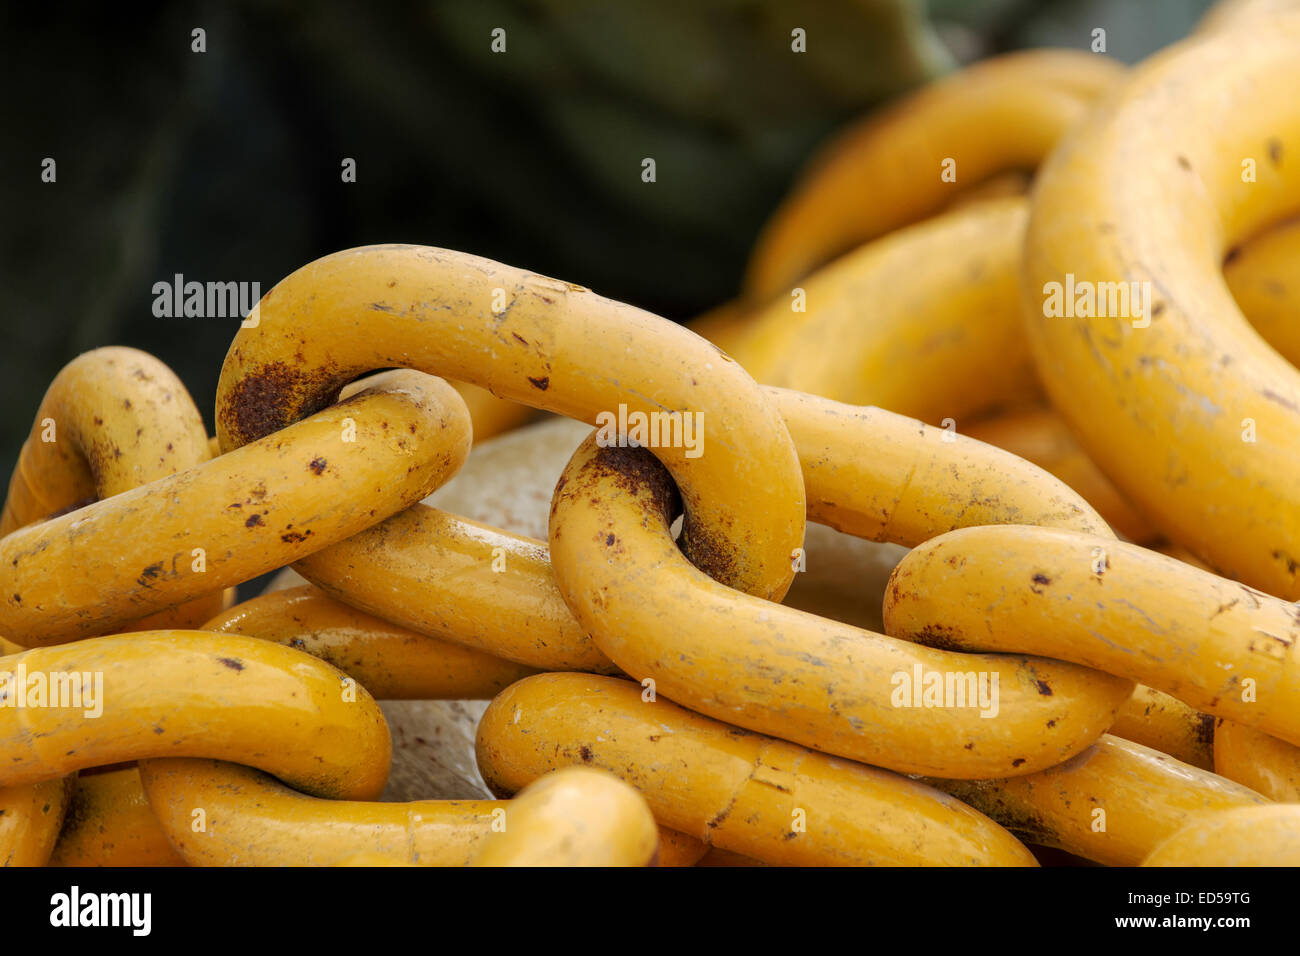 Stack of yellow chain links - Stock Image